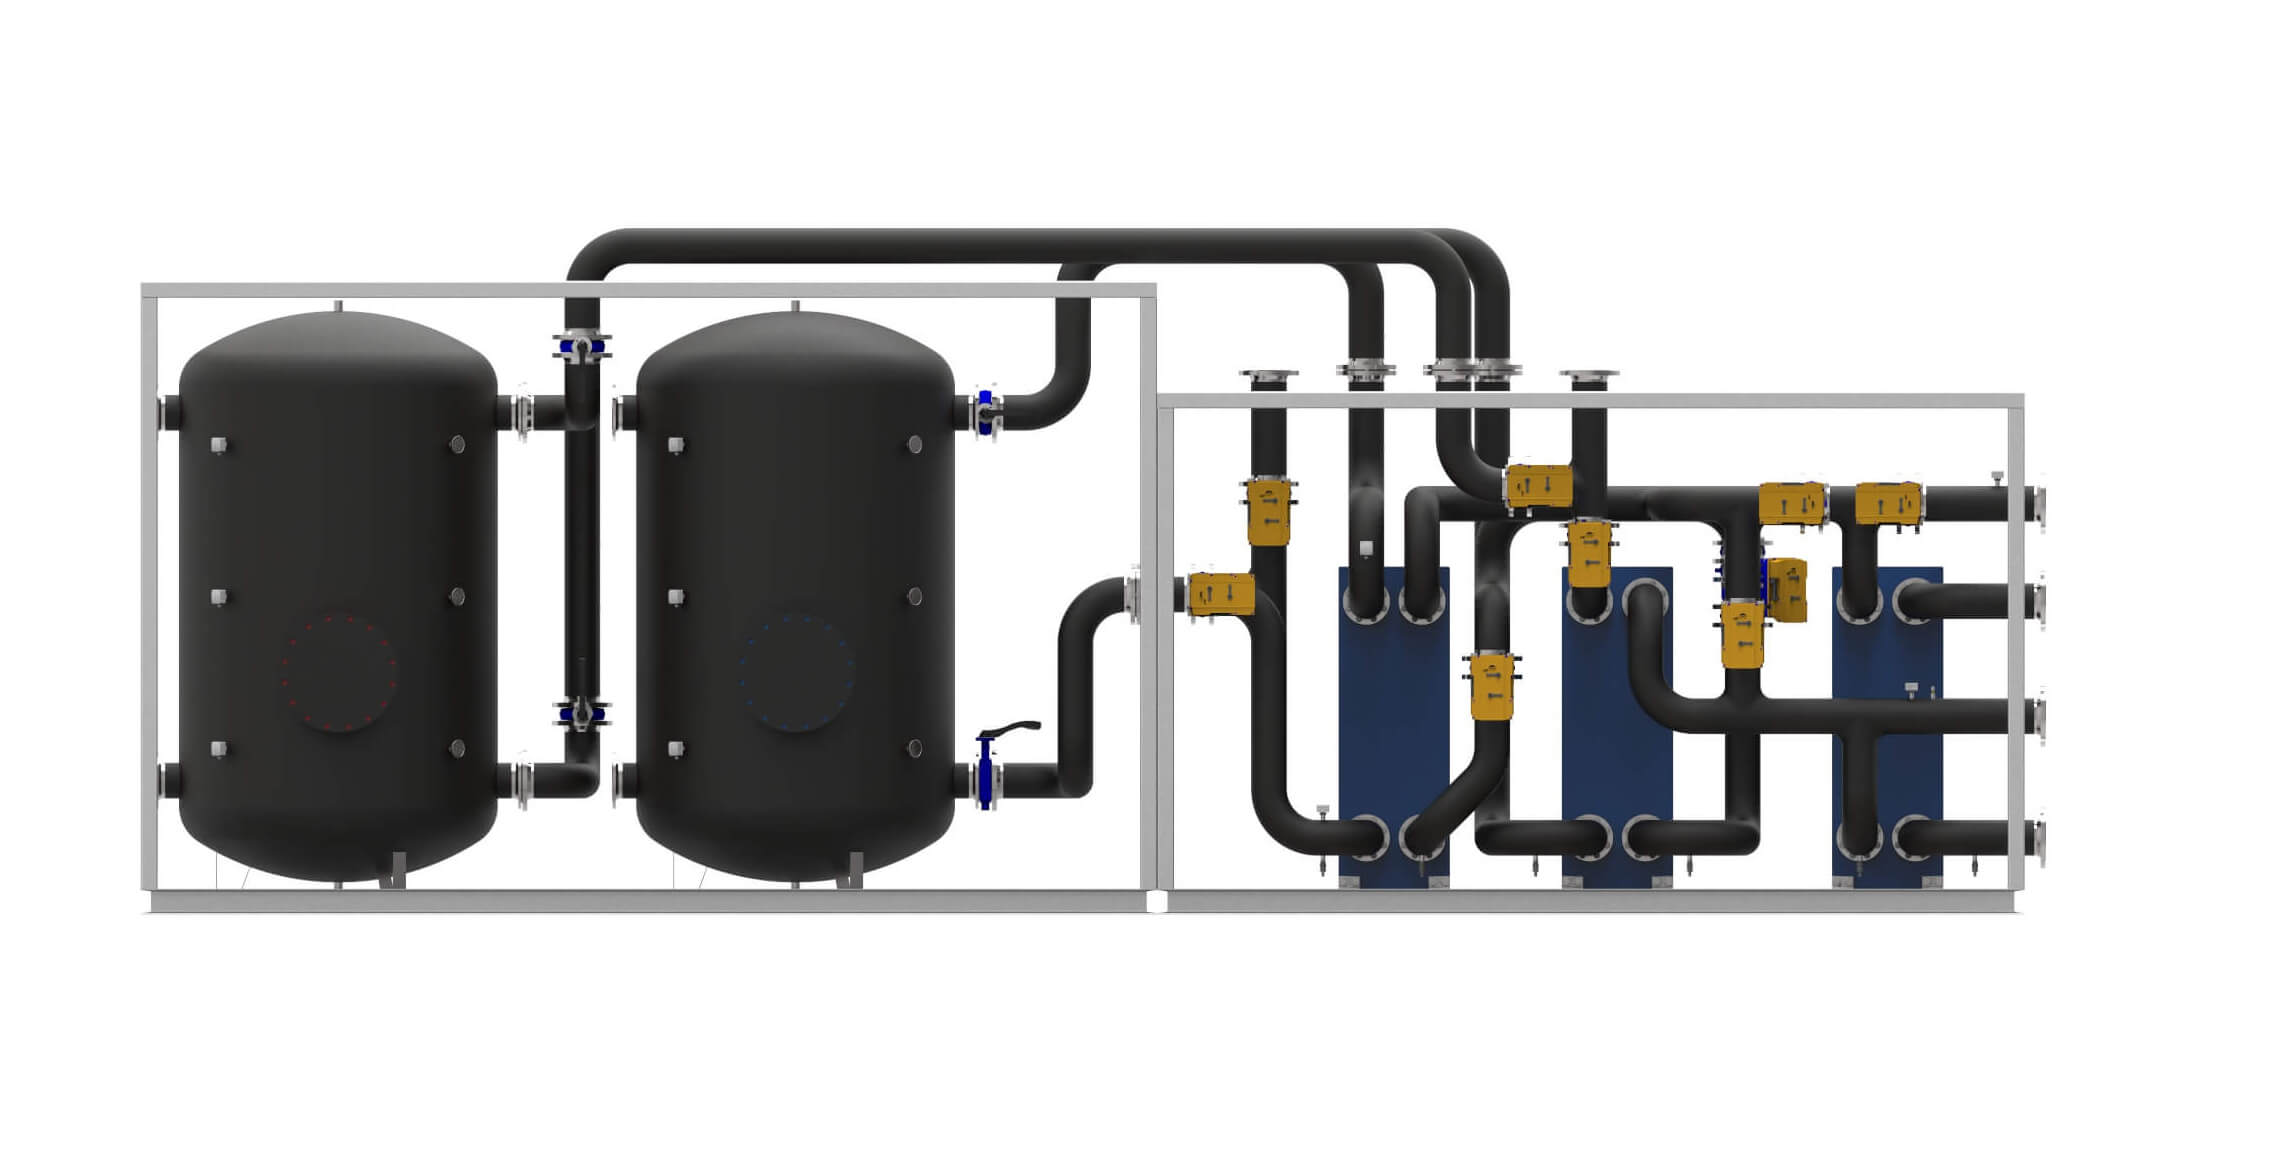 Hydrotemp_solution for preparation of cooling and heating energy_3a